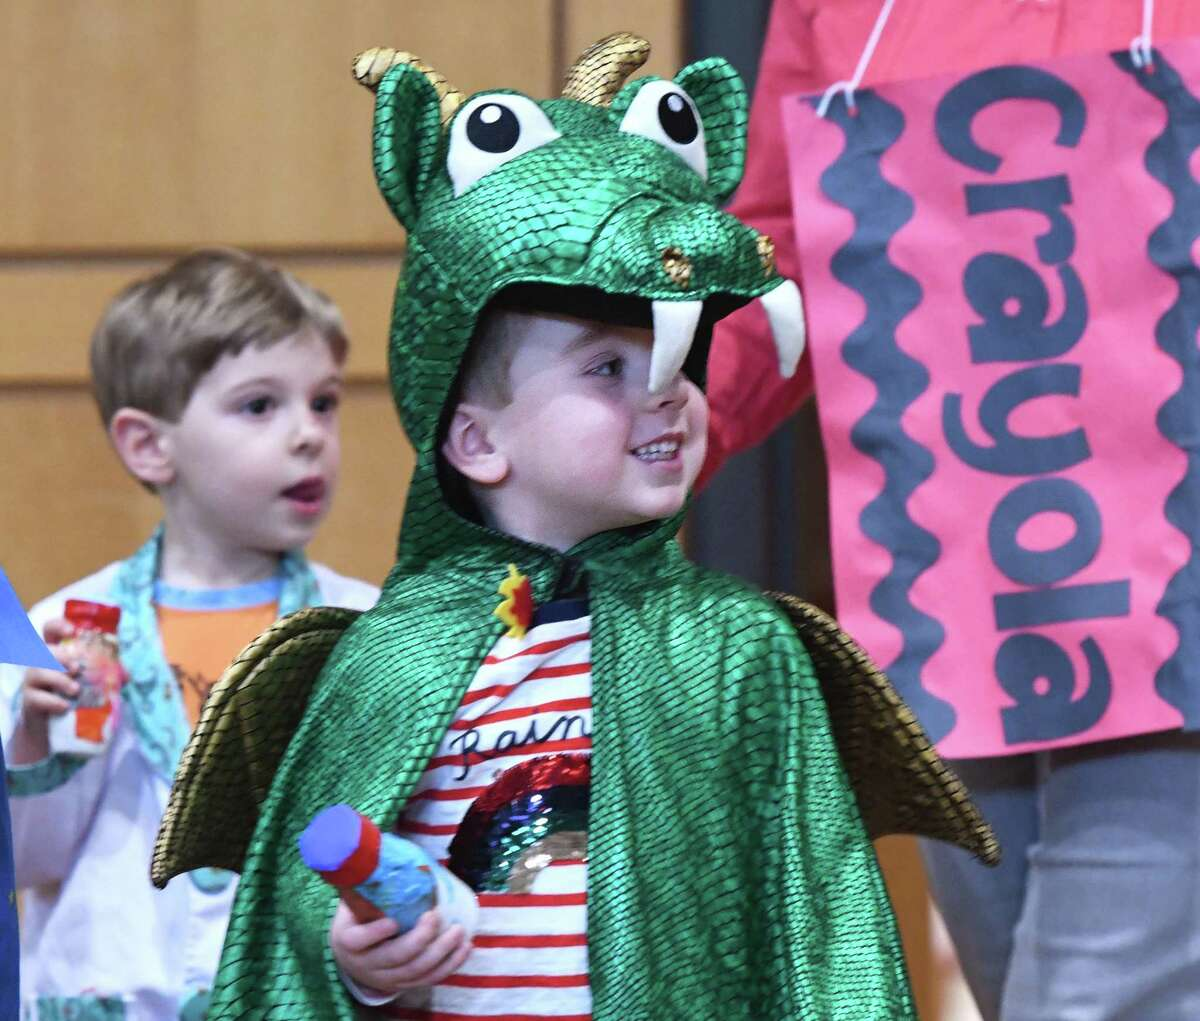 Preschooler Luca Hoffman is dressed as a dragon at the Preschool Purim Costume Parade at Temple Sholom in Greenwich, Conn. Tuesday, March 10, 2020. Youngsters from the Selma Maisel Nursery School paraded in costume around a crowd of parents to celebrate the Jewish holiday of Purim. The holiday is a celebration commemorating the saving of the Jewish people from the Persian emperor Haman.